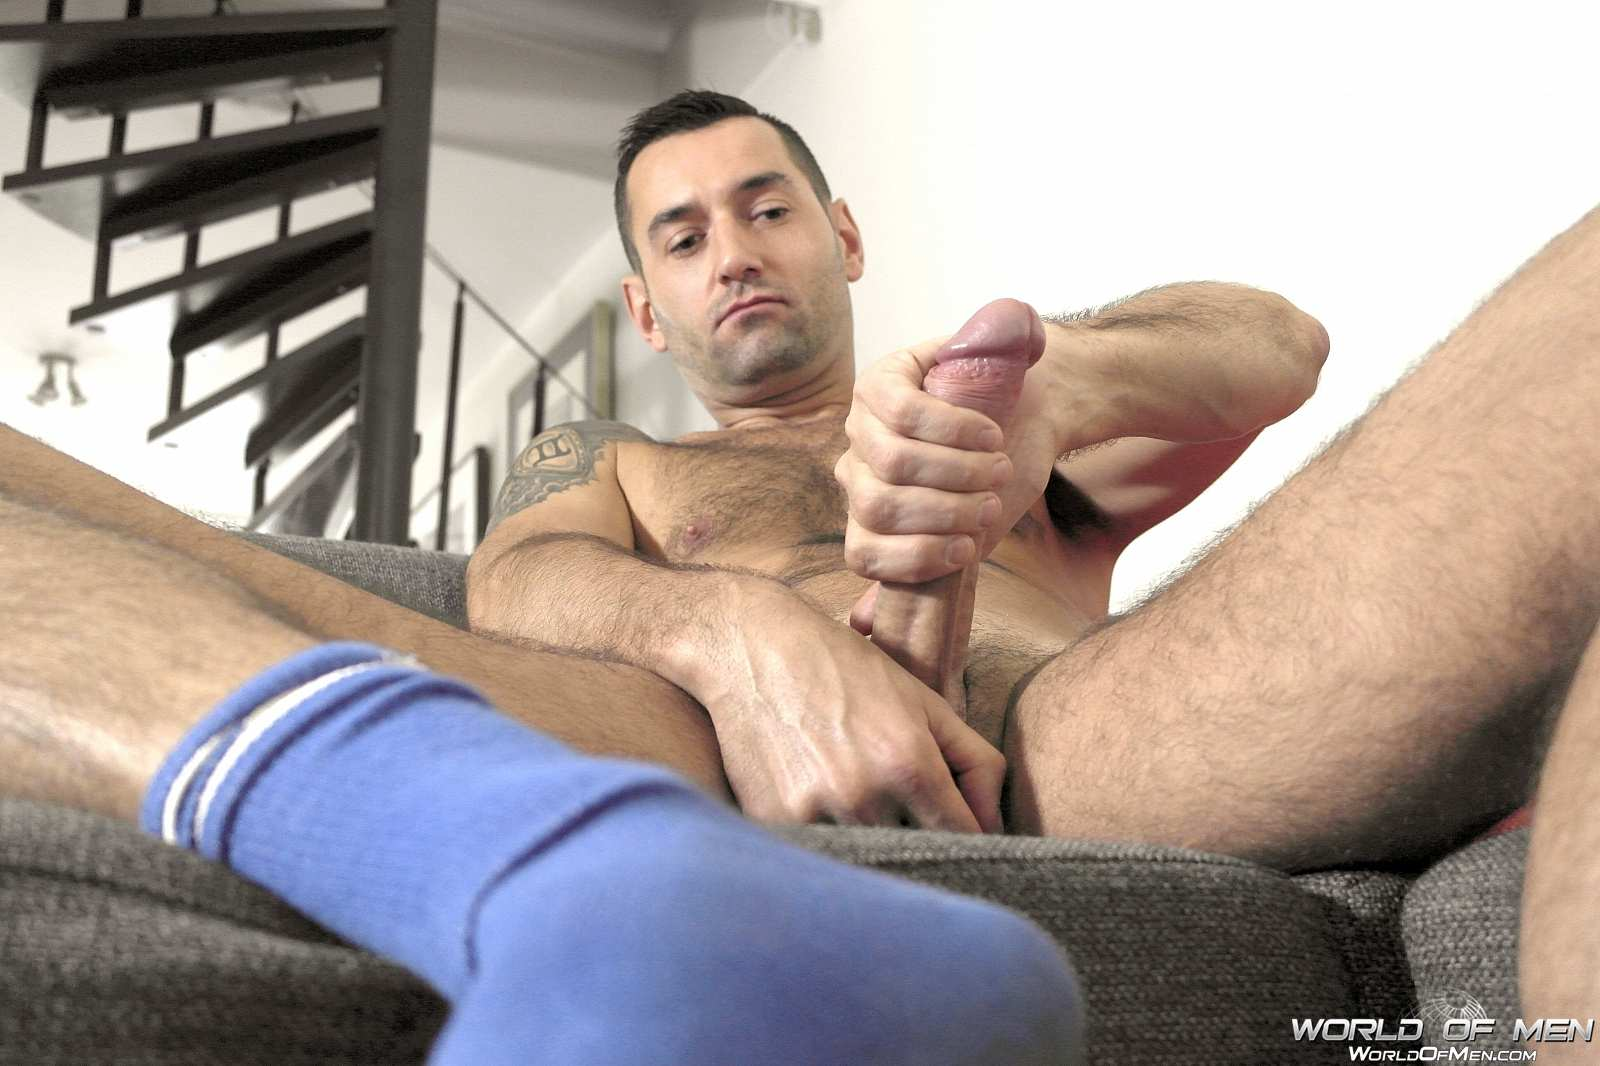 World Of Men Chris ADam Big Uncut Cock Jerk Off Masturbation Amateur Gay Porn 03 Hairy Sexy Stud Fingers His Ass And Plays With His Huge Uncut Cock